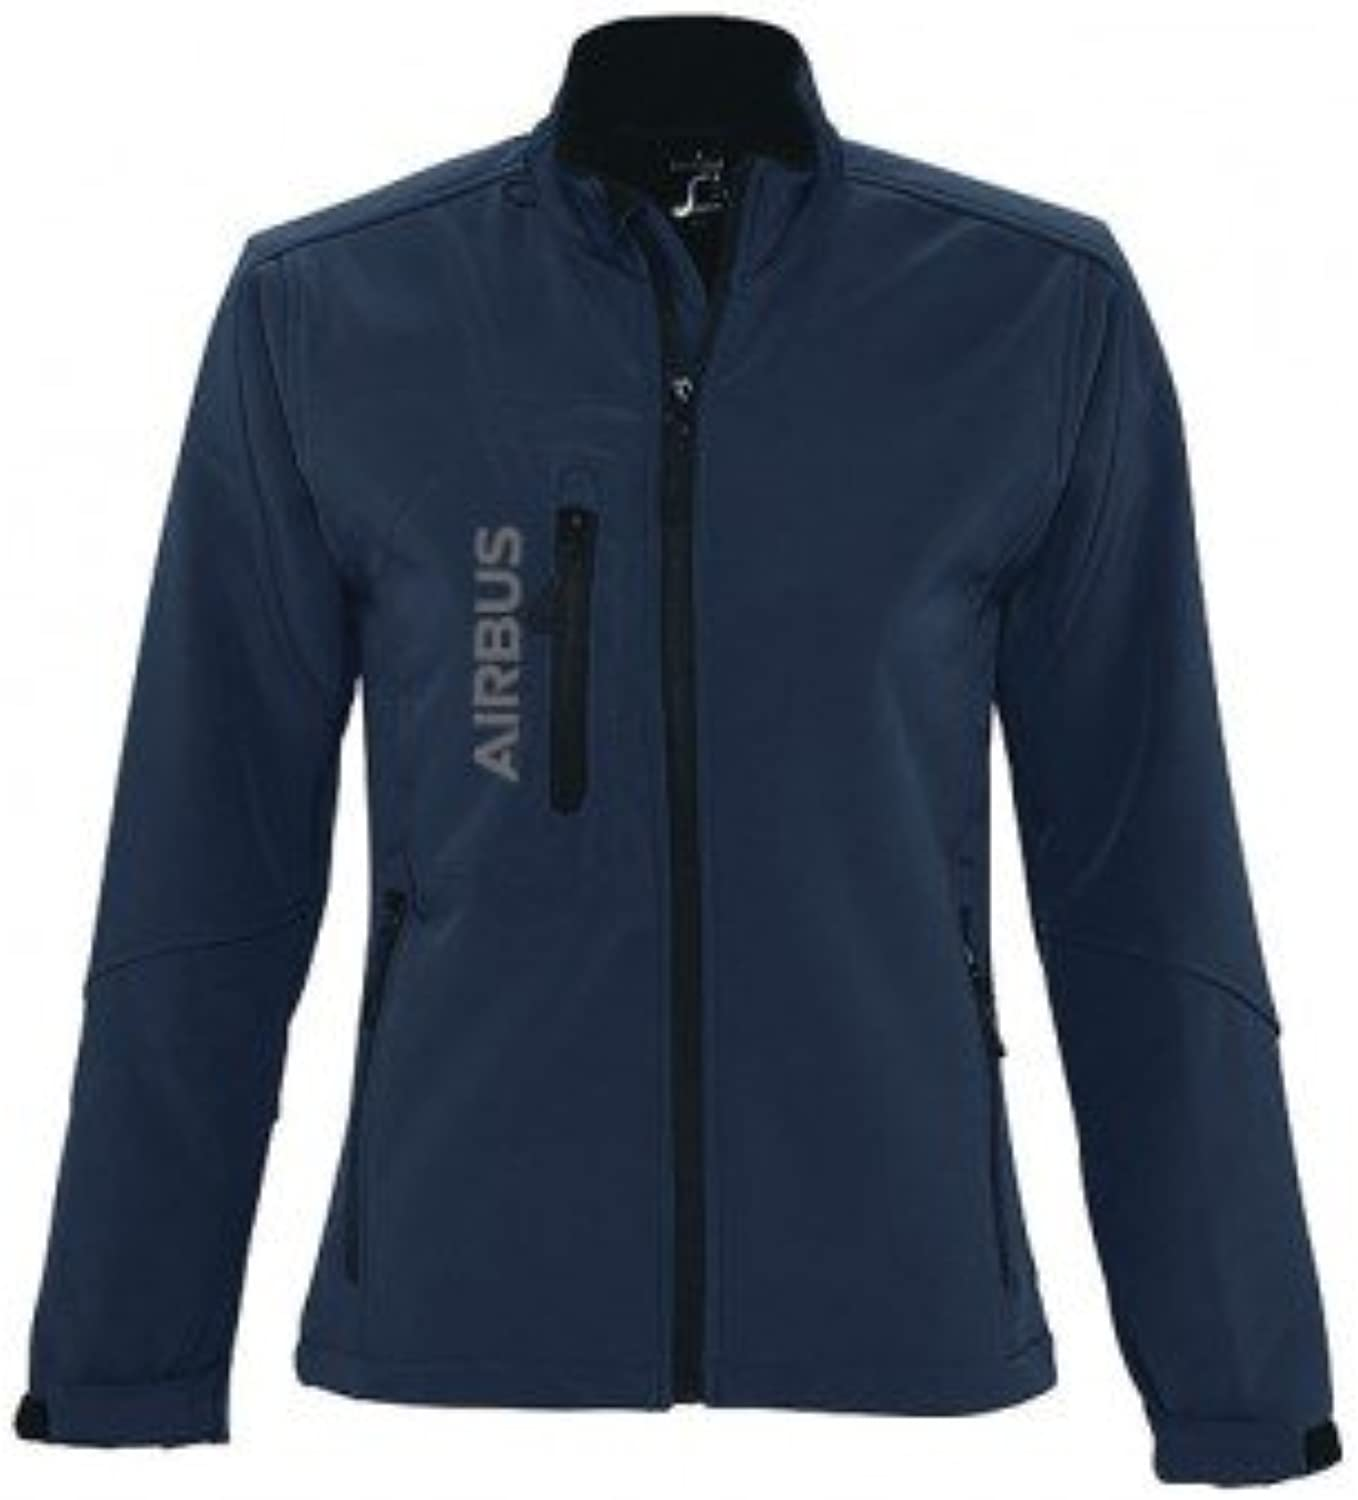 Damen Softshell Jacke - XL